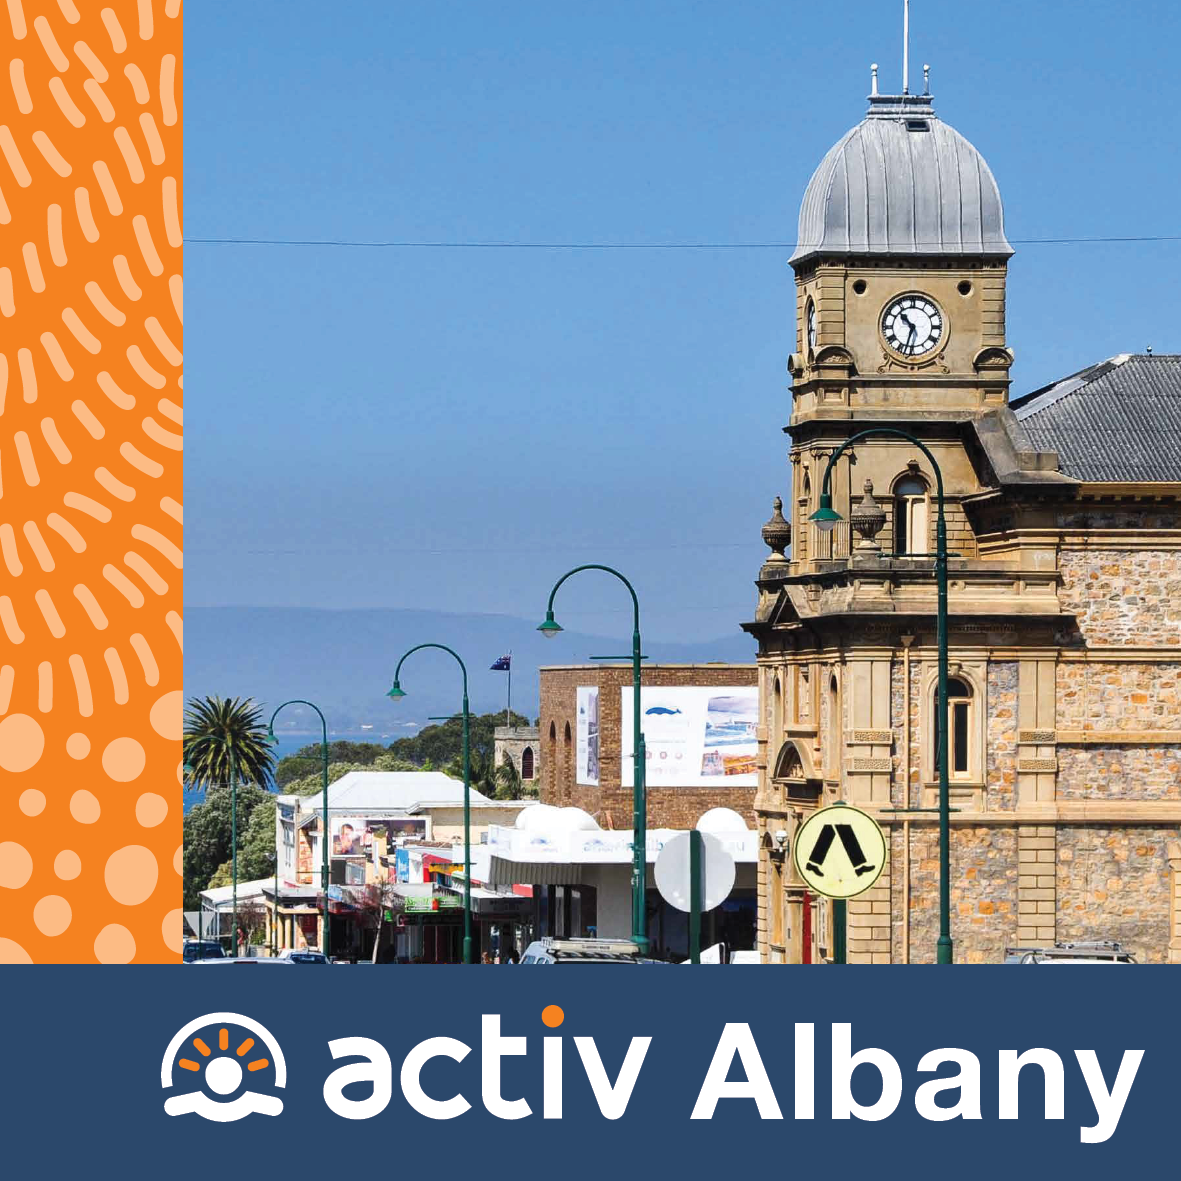 ACTIV ALBANY - Activ Albany operates a number of services for local commercial clients. Activ staff are highly trained to your jobs specific requirements. Activ's flexibility to your business needs is what sets us apart. Every client we service is different with jobs that vary from administration to sewing, packaging and a variety of timber manufacturing.P: 08 9841 4411 E: Albany@activ.asn.au W: www.activ.asn.au